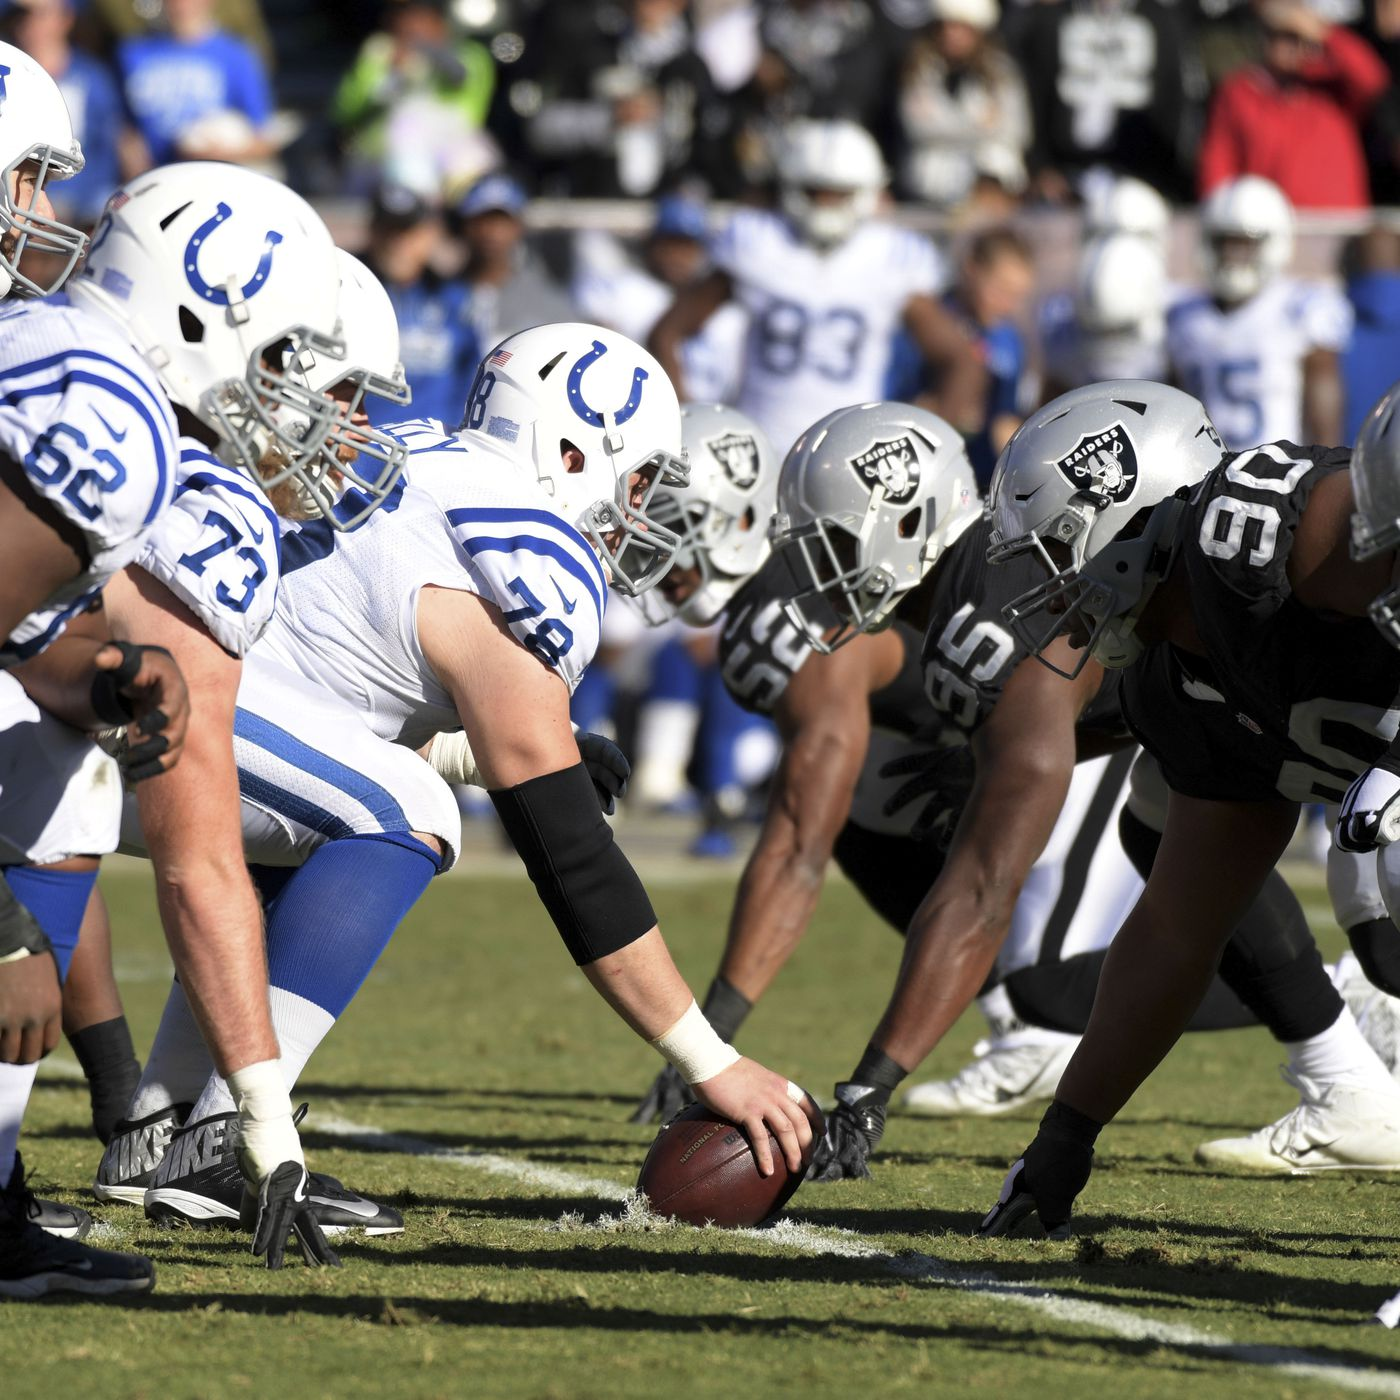 Colts 2016 Season In Review Week 16 Loss To The Raiders